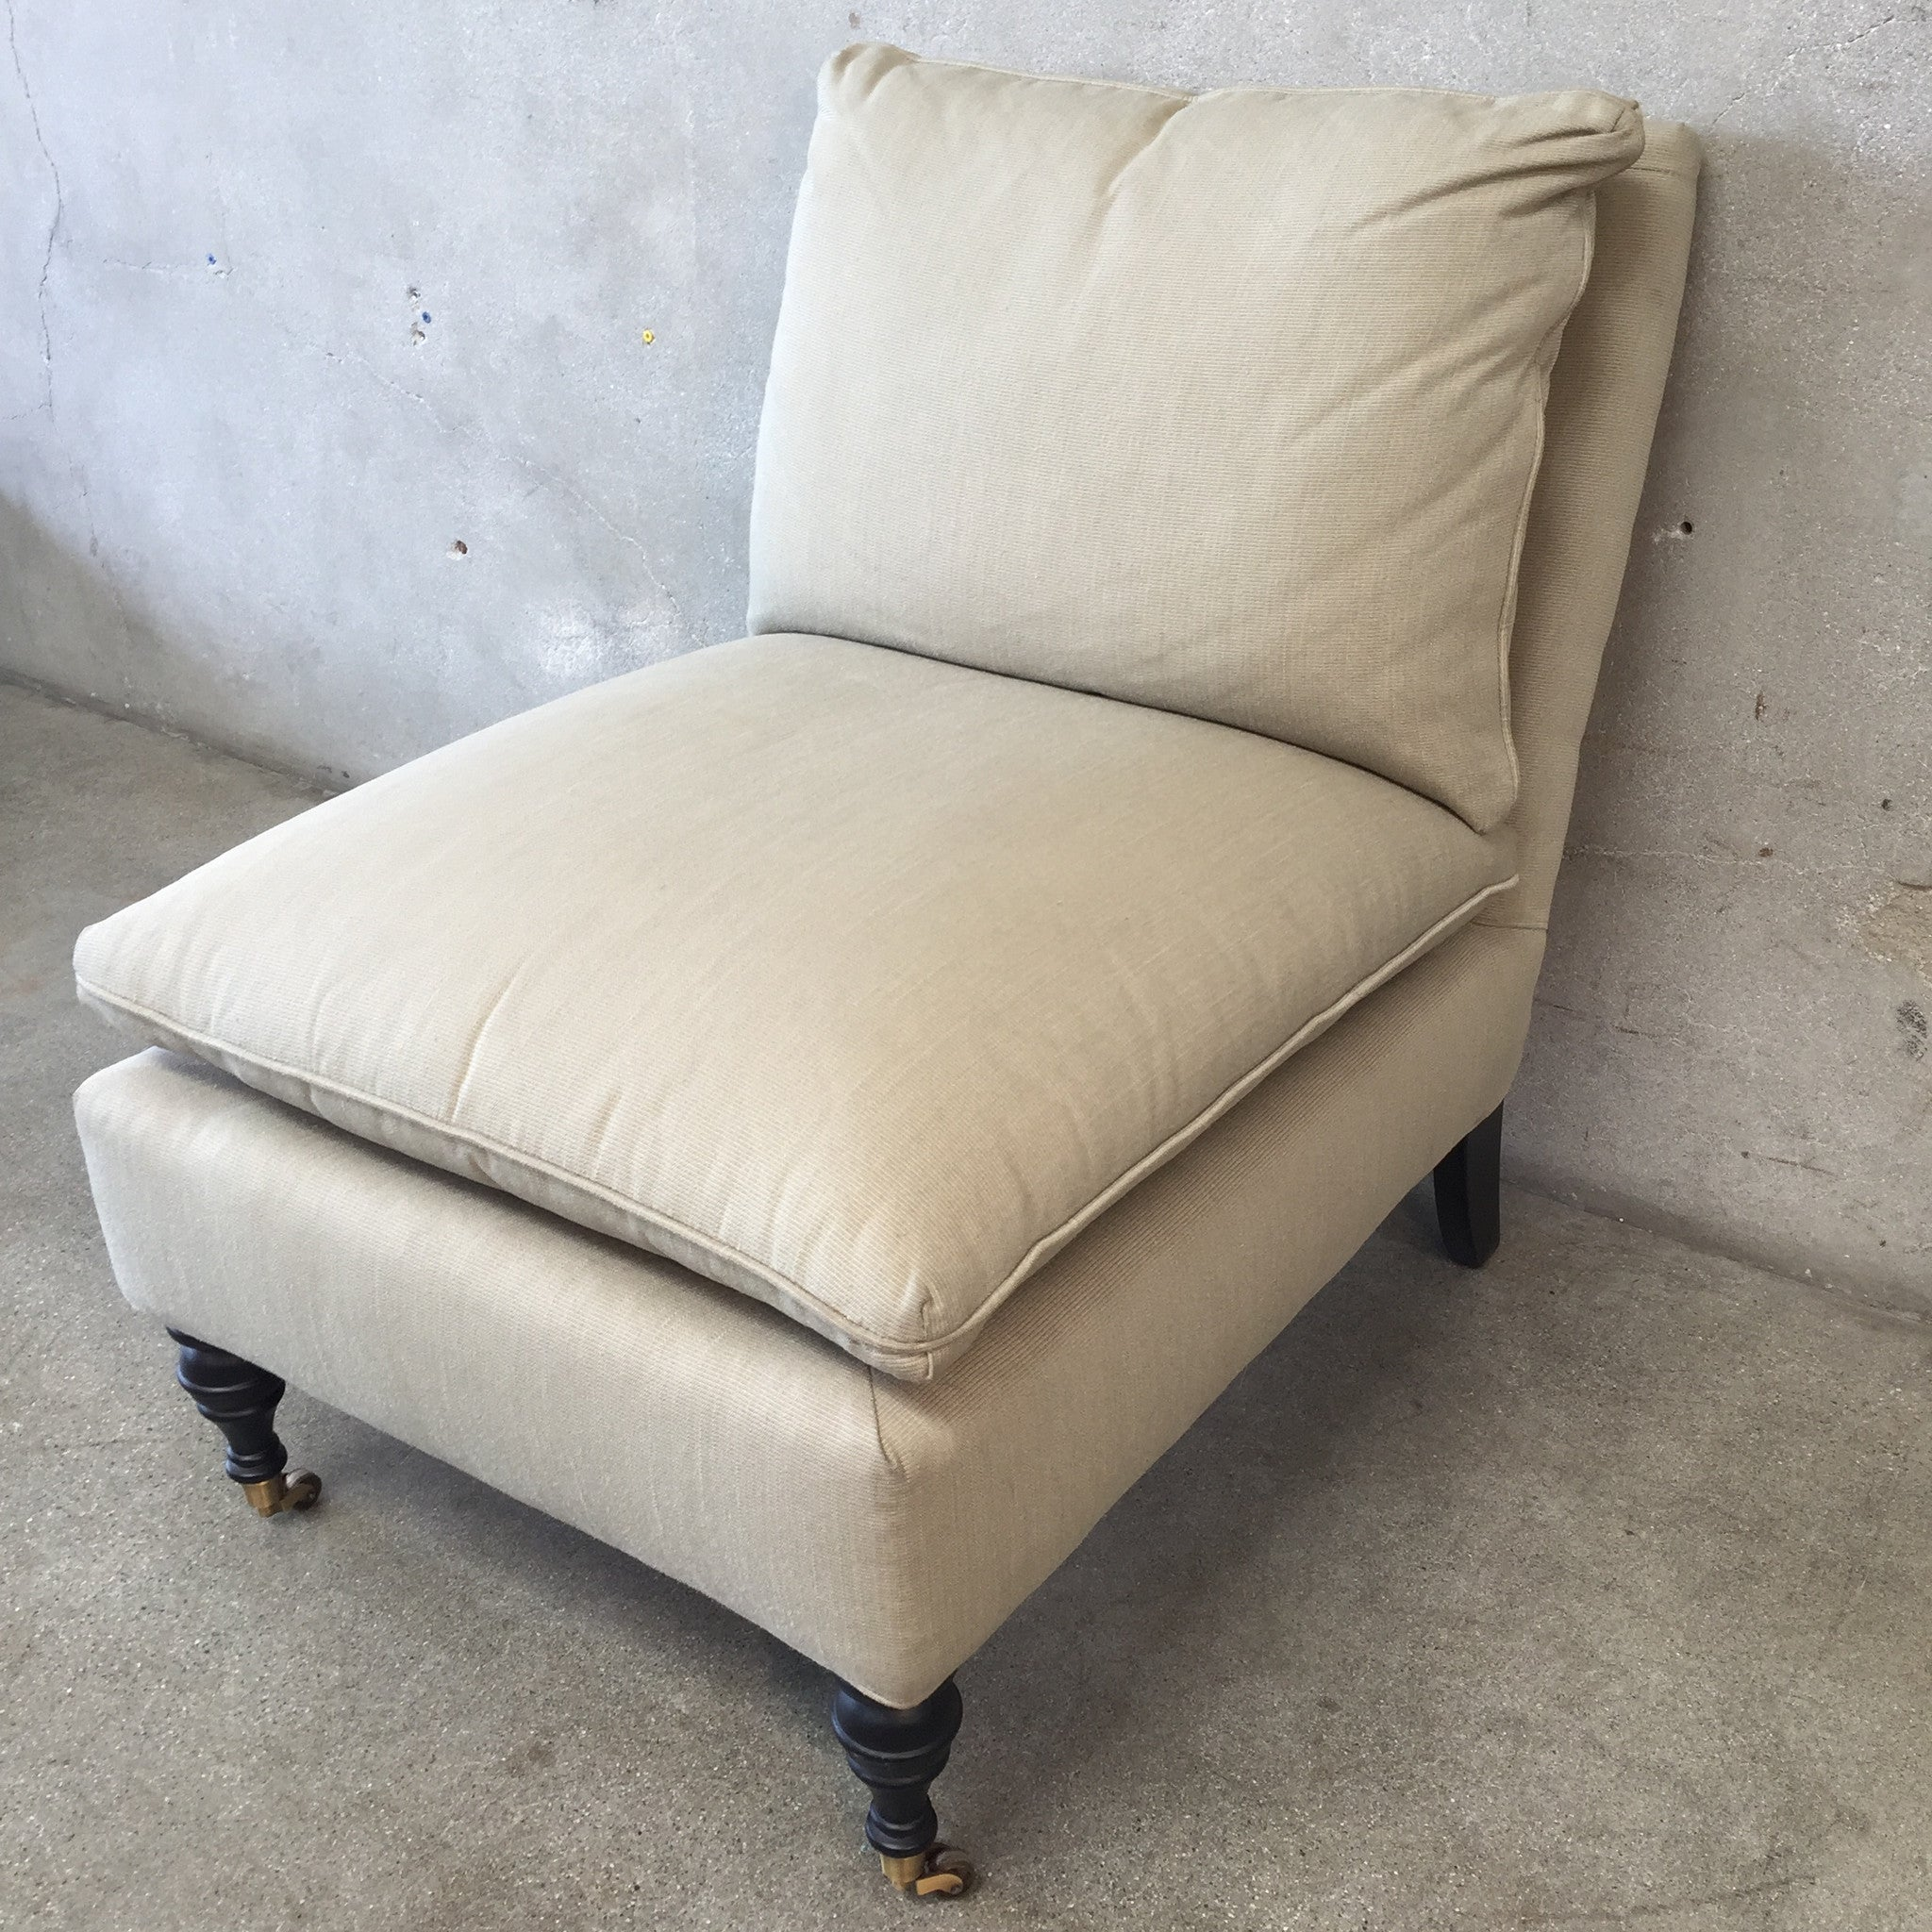 Description. Beautiful distressed leather ottoman by Mitchell Gold for Restoration Hardware. Please note one button tuft is missing. Beautiful distressed leather ottoman by Mitchell Gold for Restoration Hardware.